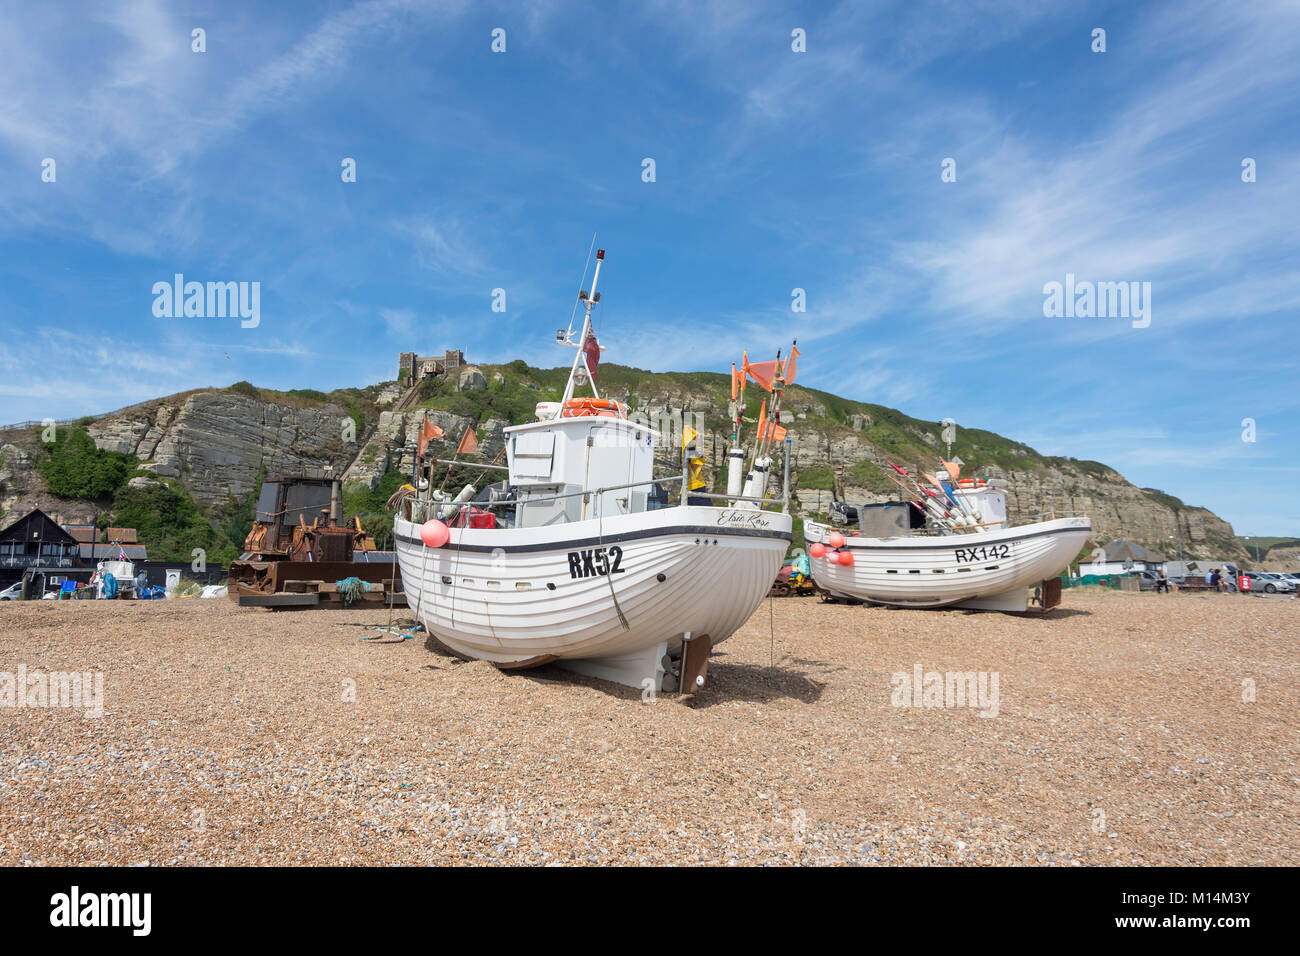 Fishing boats on Rock-a-Nore Beach, Hastings, East Sussex, England, United Kingdom - Stock Image